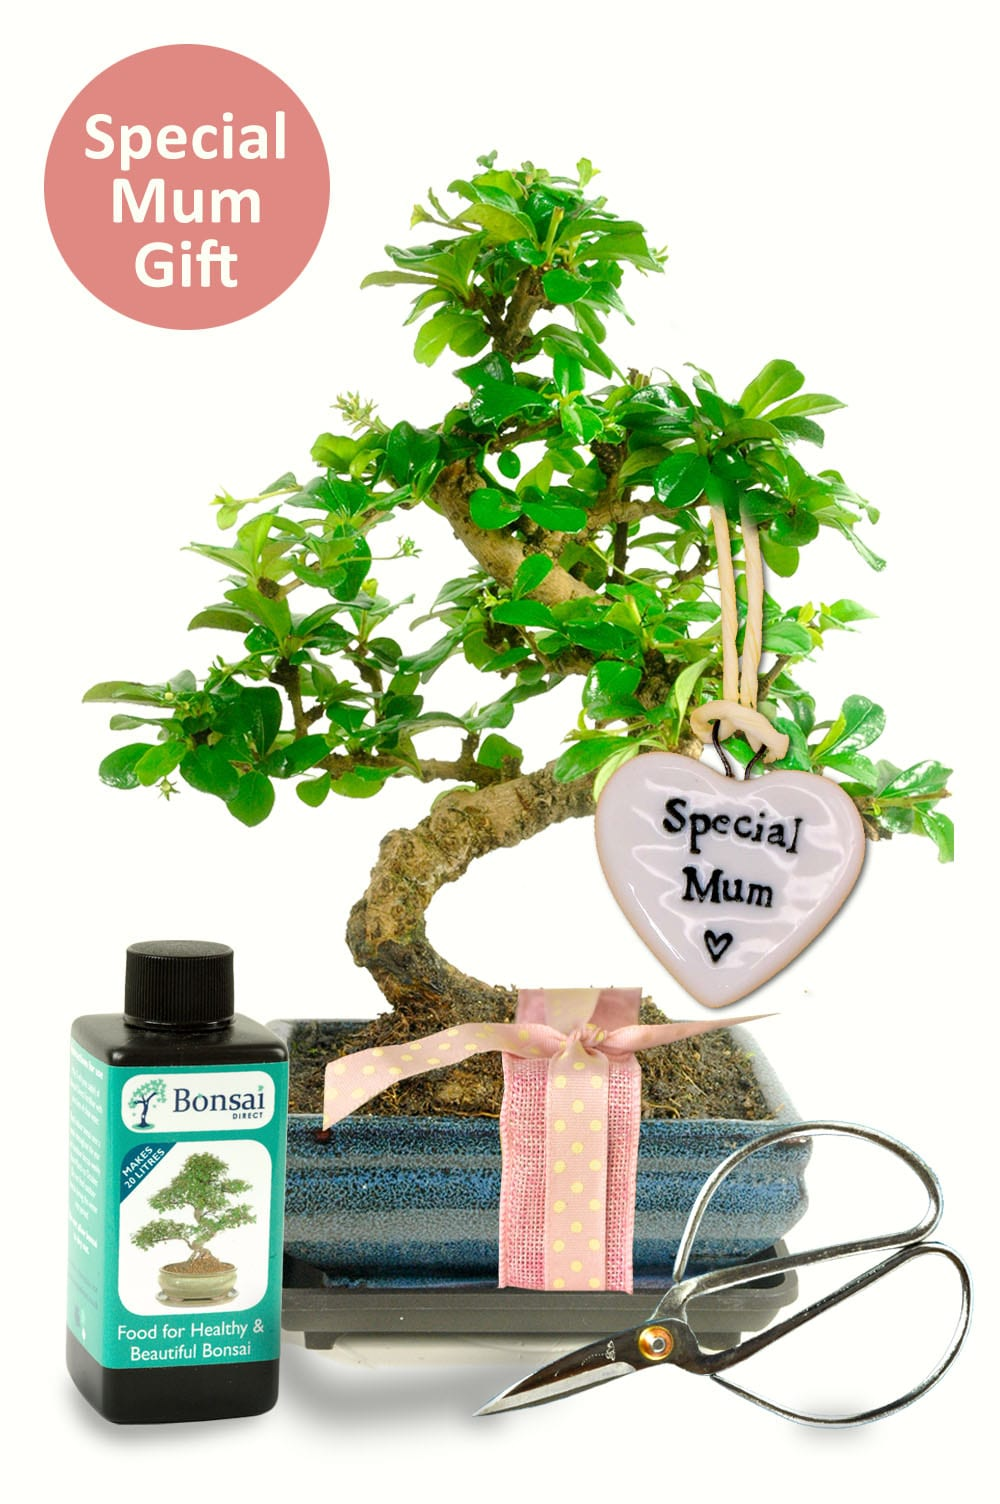 Special Mum bonsai starter kit